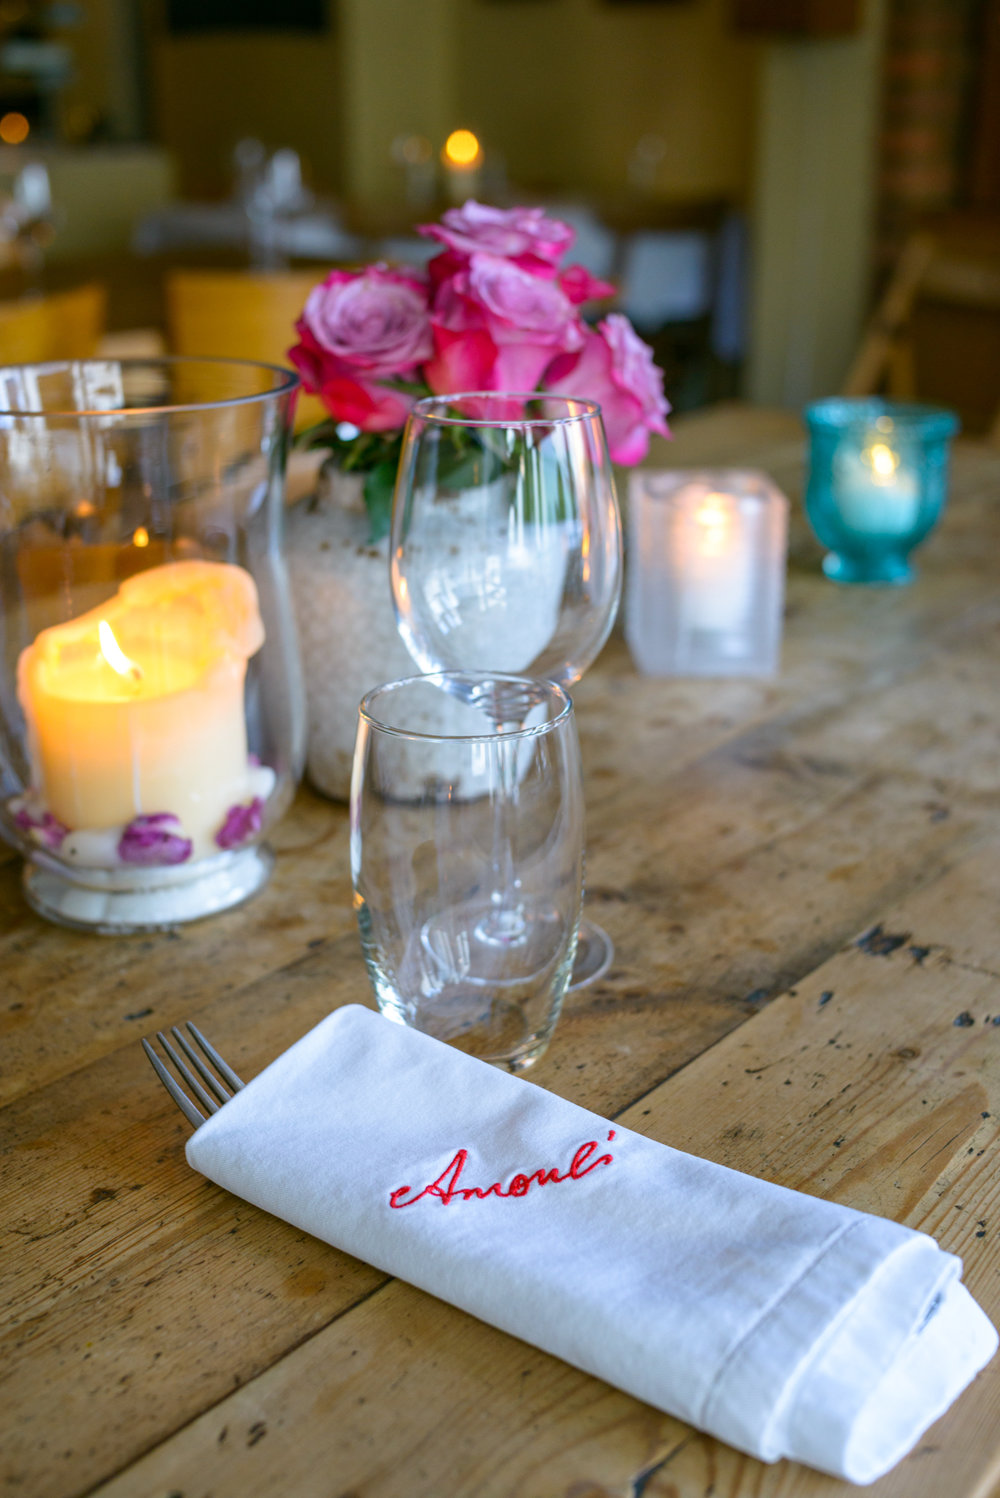 - Amoul's was an independent business that opened it's doors to the public back in July 2003.The shared dining table was central to the feel of home, where customers enjoyed what I cooked for them. Cooking for me is a great love and pleasure and I wanted Amoul's to feel like it was an extension of my home.I am a mother first and foremost; when my children were born I had the luxury and pleasure to stay at home and raise them. I believe that food and love are two essential forms of nourishment that are crucial for building healthy societies, both physically and mentally. To some people this might be a simplistic approach, but my place was built on these two beliefs, they were the main threads that went through the whole weave that made the place feel like home to our treasured customers who understood the concept and appreciated it.I come from Marjayoune in the south of Lebanon so my recipes come from my home. All the recipes are infused with memories. Each recipe is special to me, it is either given to me by my mother, my father, a dear friend or people that touched my life and still remain in my heart.Preserving our culinary traditions is a way of preserving our culture . Food for me is an important human need that unites people together, whether it is a family meal, or an elaborate celebration. Food is a defining factor of our identity, of the the people we are and where we came from.